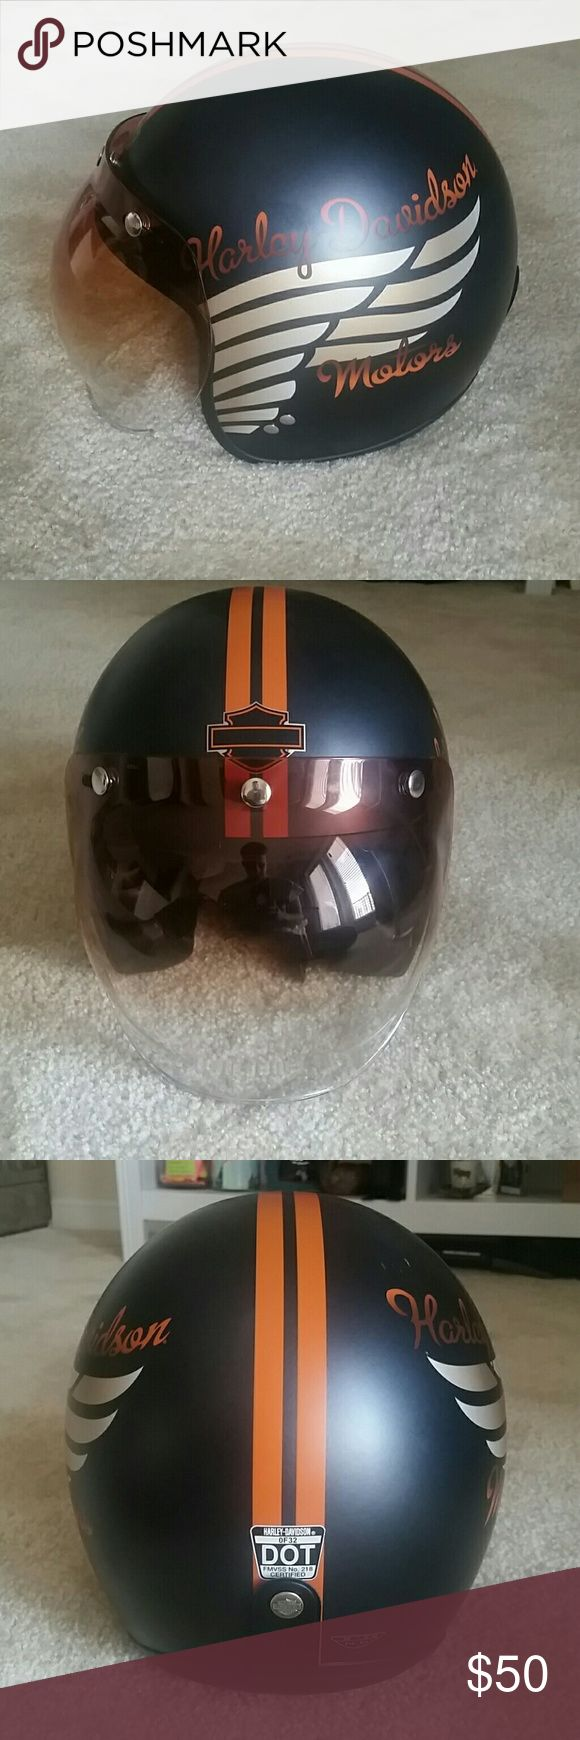 Very lightly used Harley Davidson helmet Like new with a few small marks. Comes with bubble shield also which is like new. Harley-Davidson Other